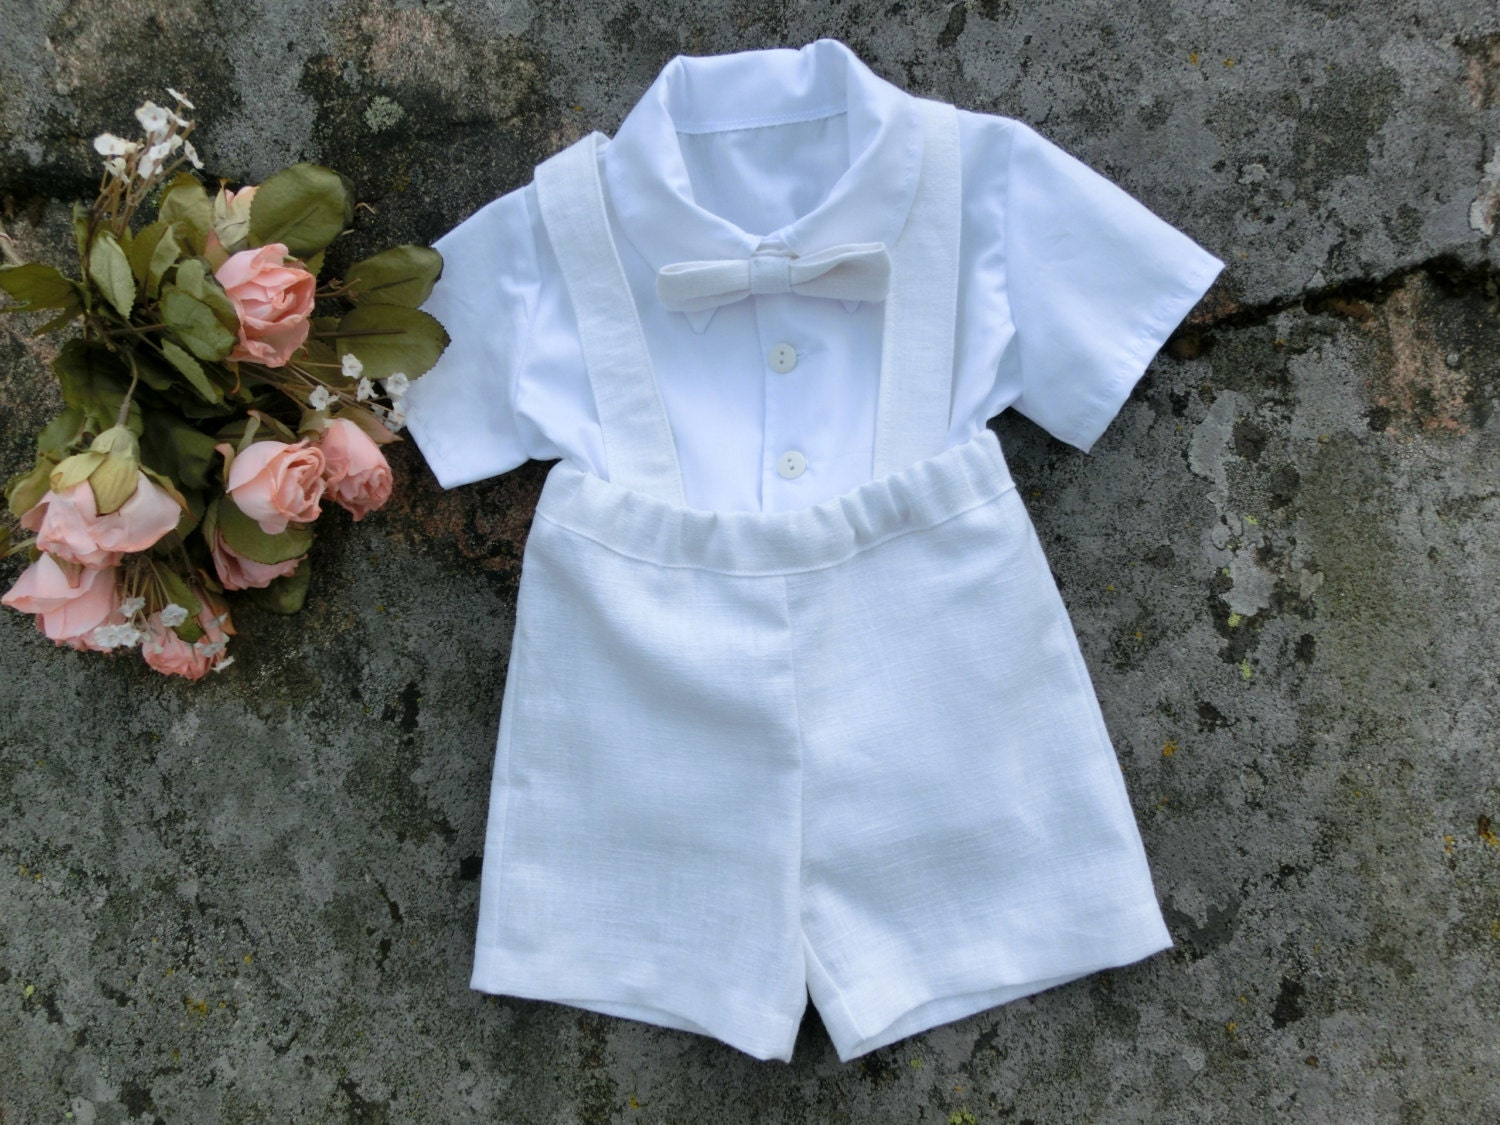 Boy baptism outfit white linen suspender shorts Baby | Etsy